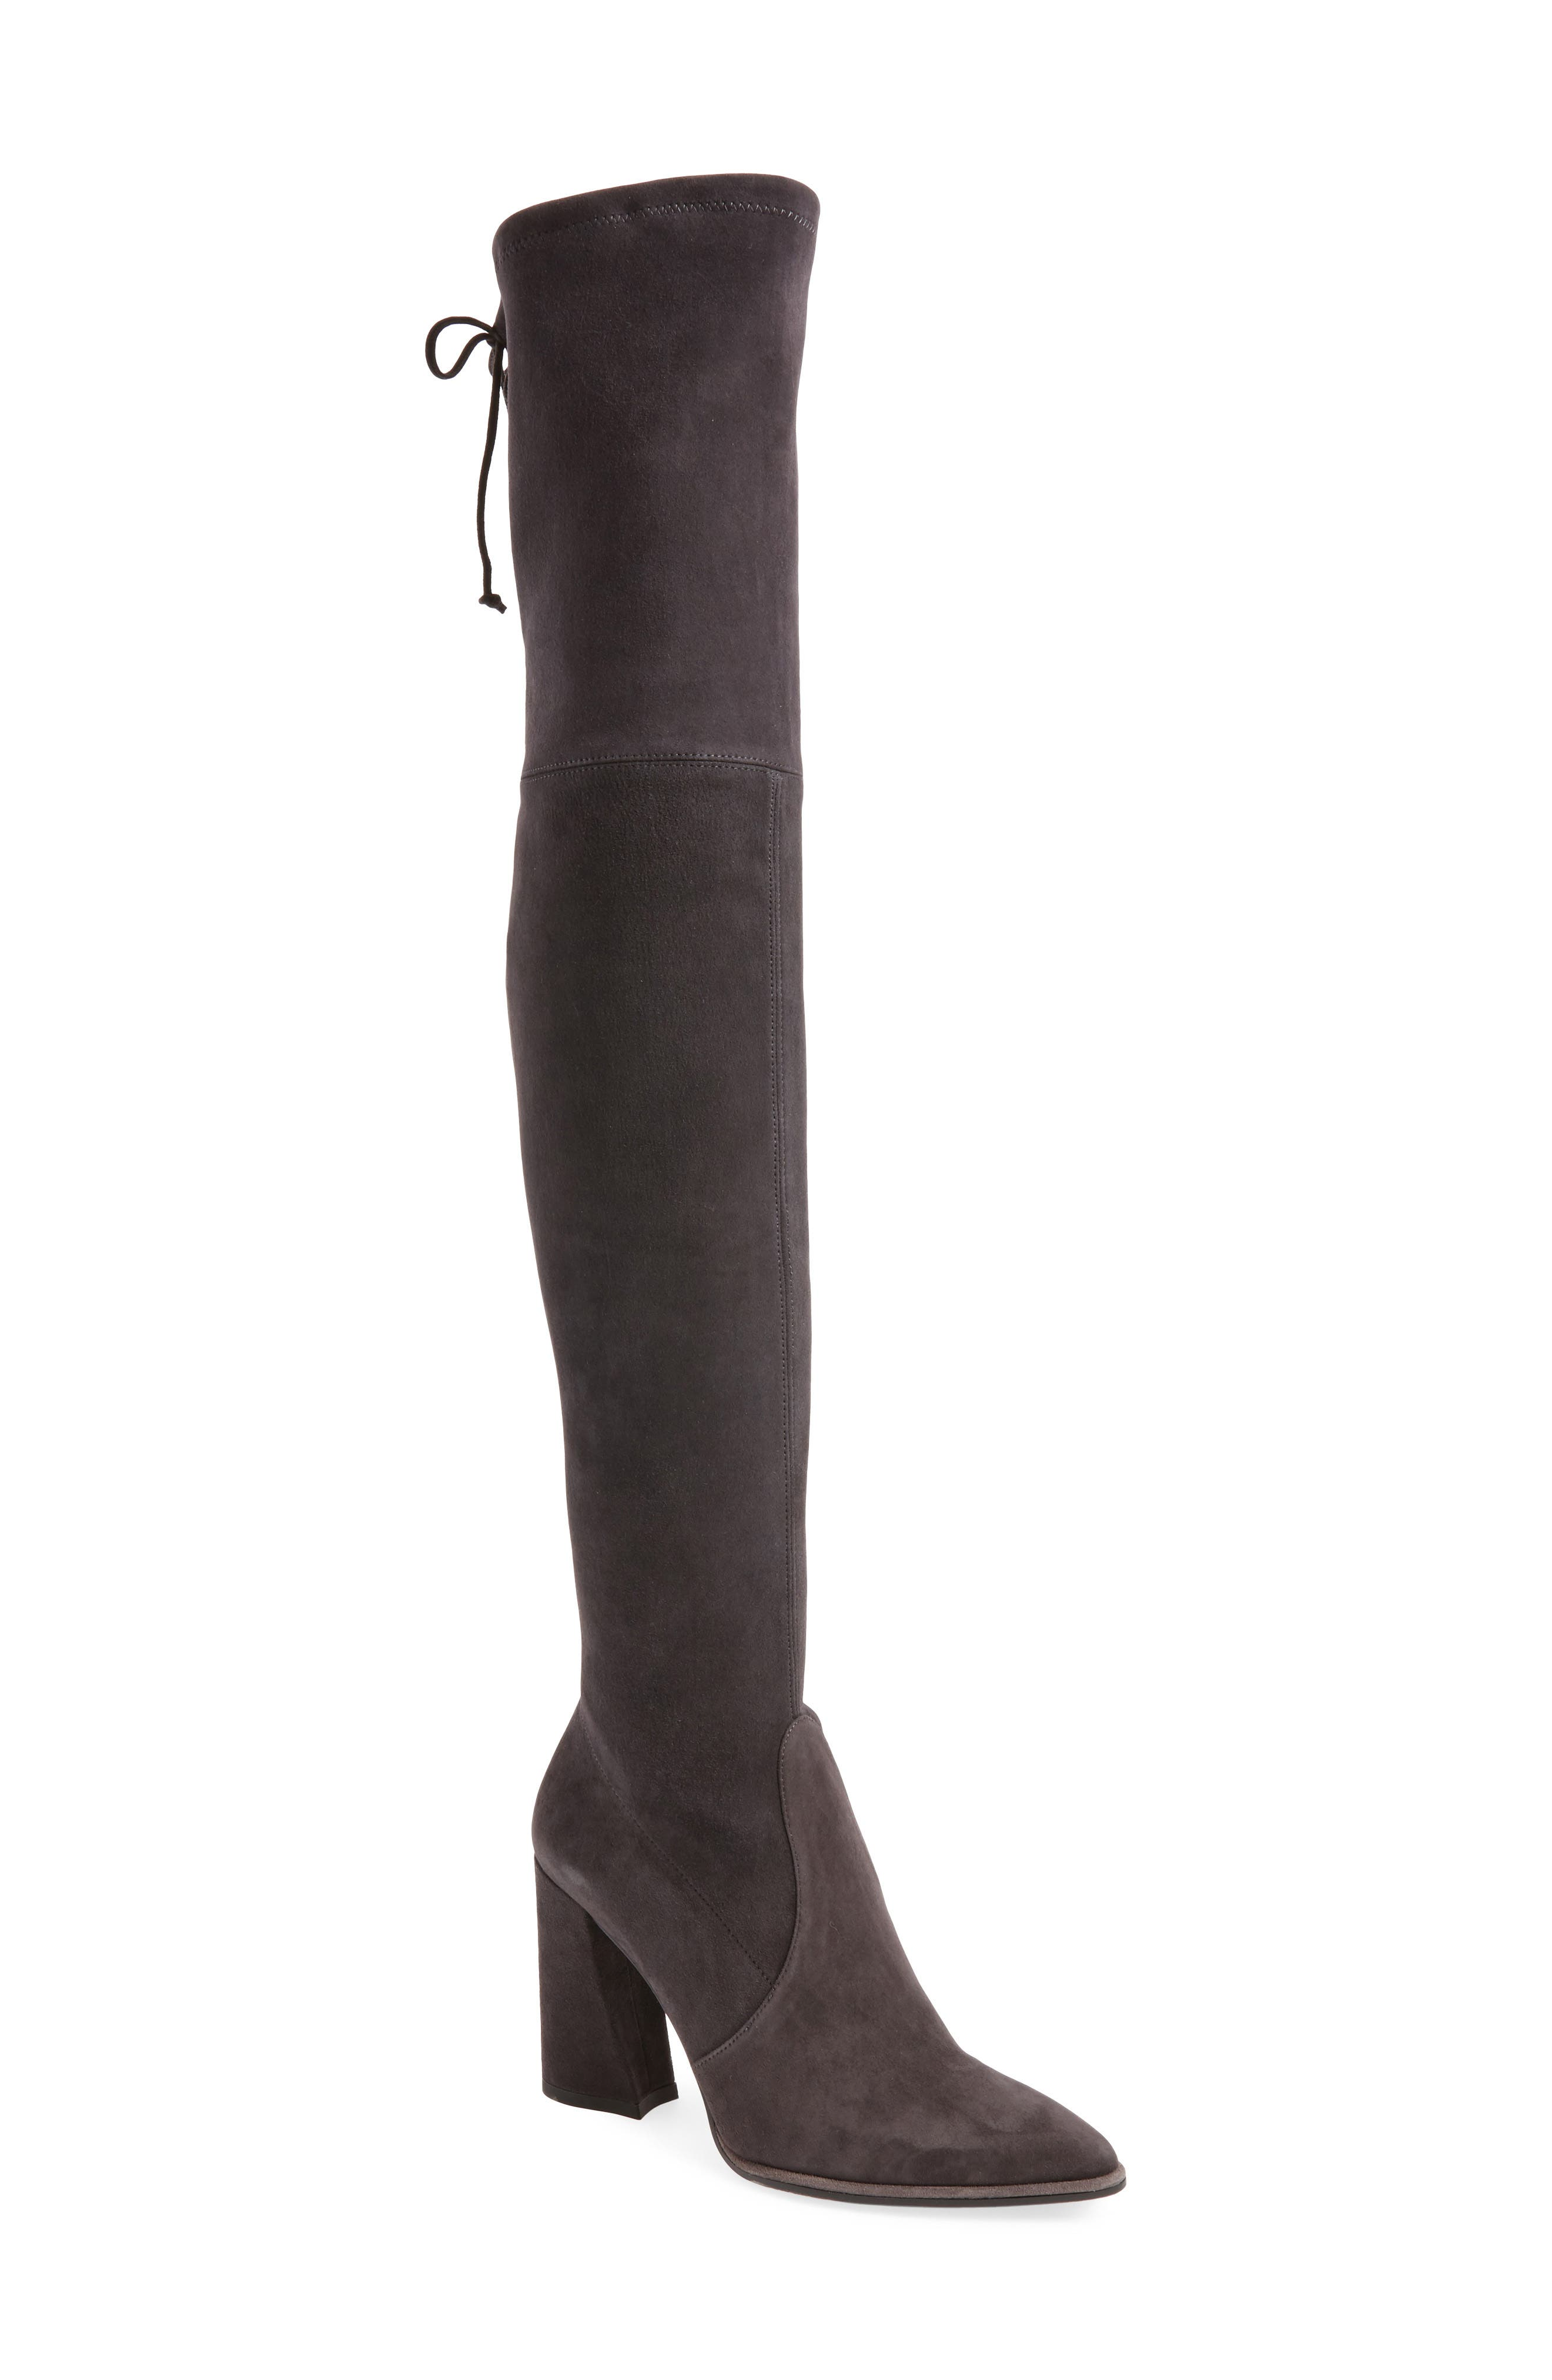 Funland Over the Knee Boot,                             Main thumbnail 1, color,